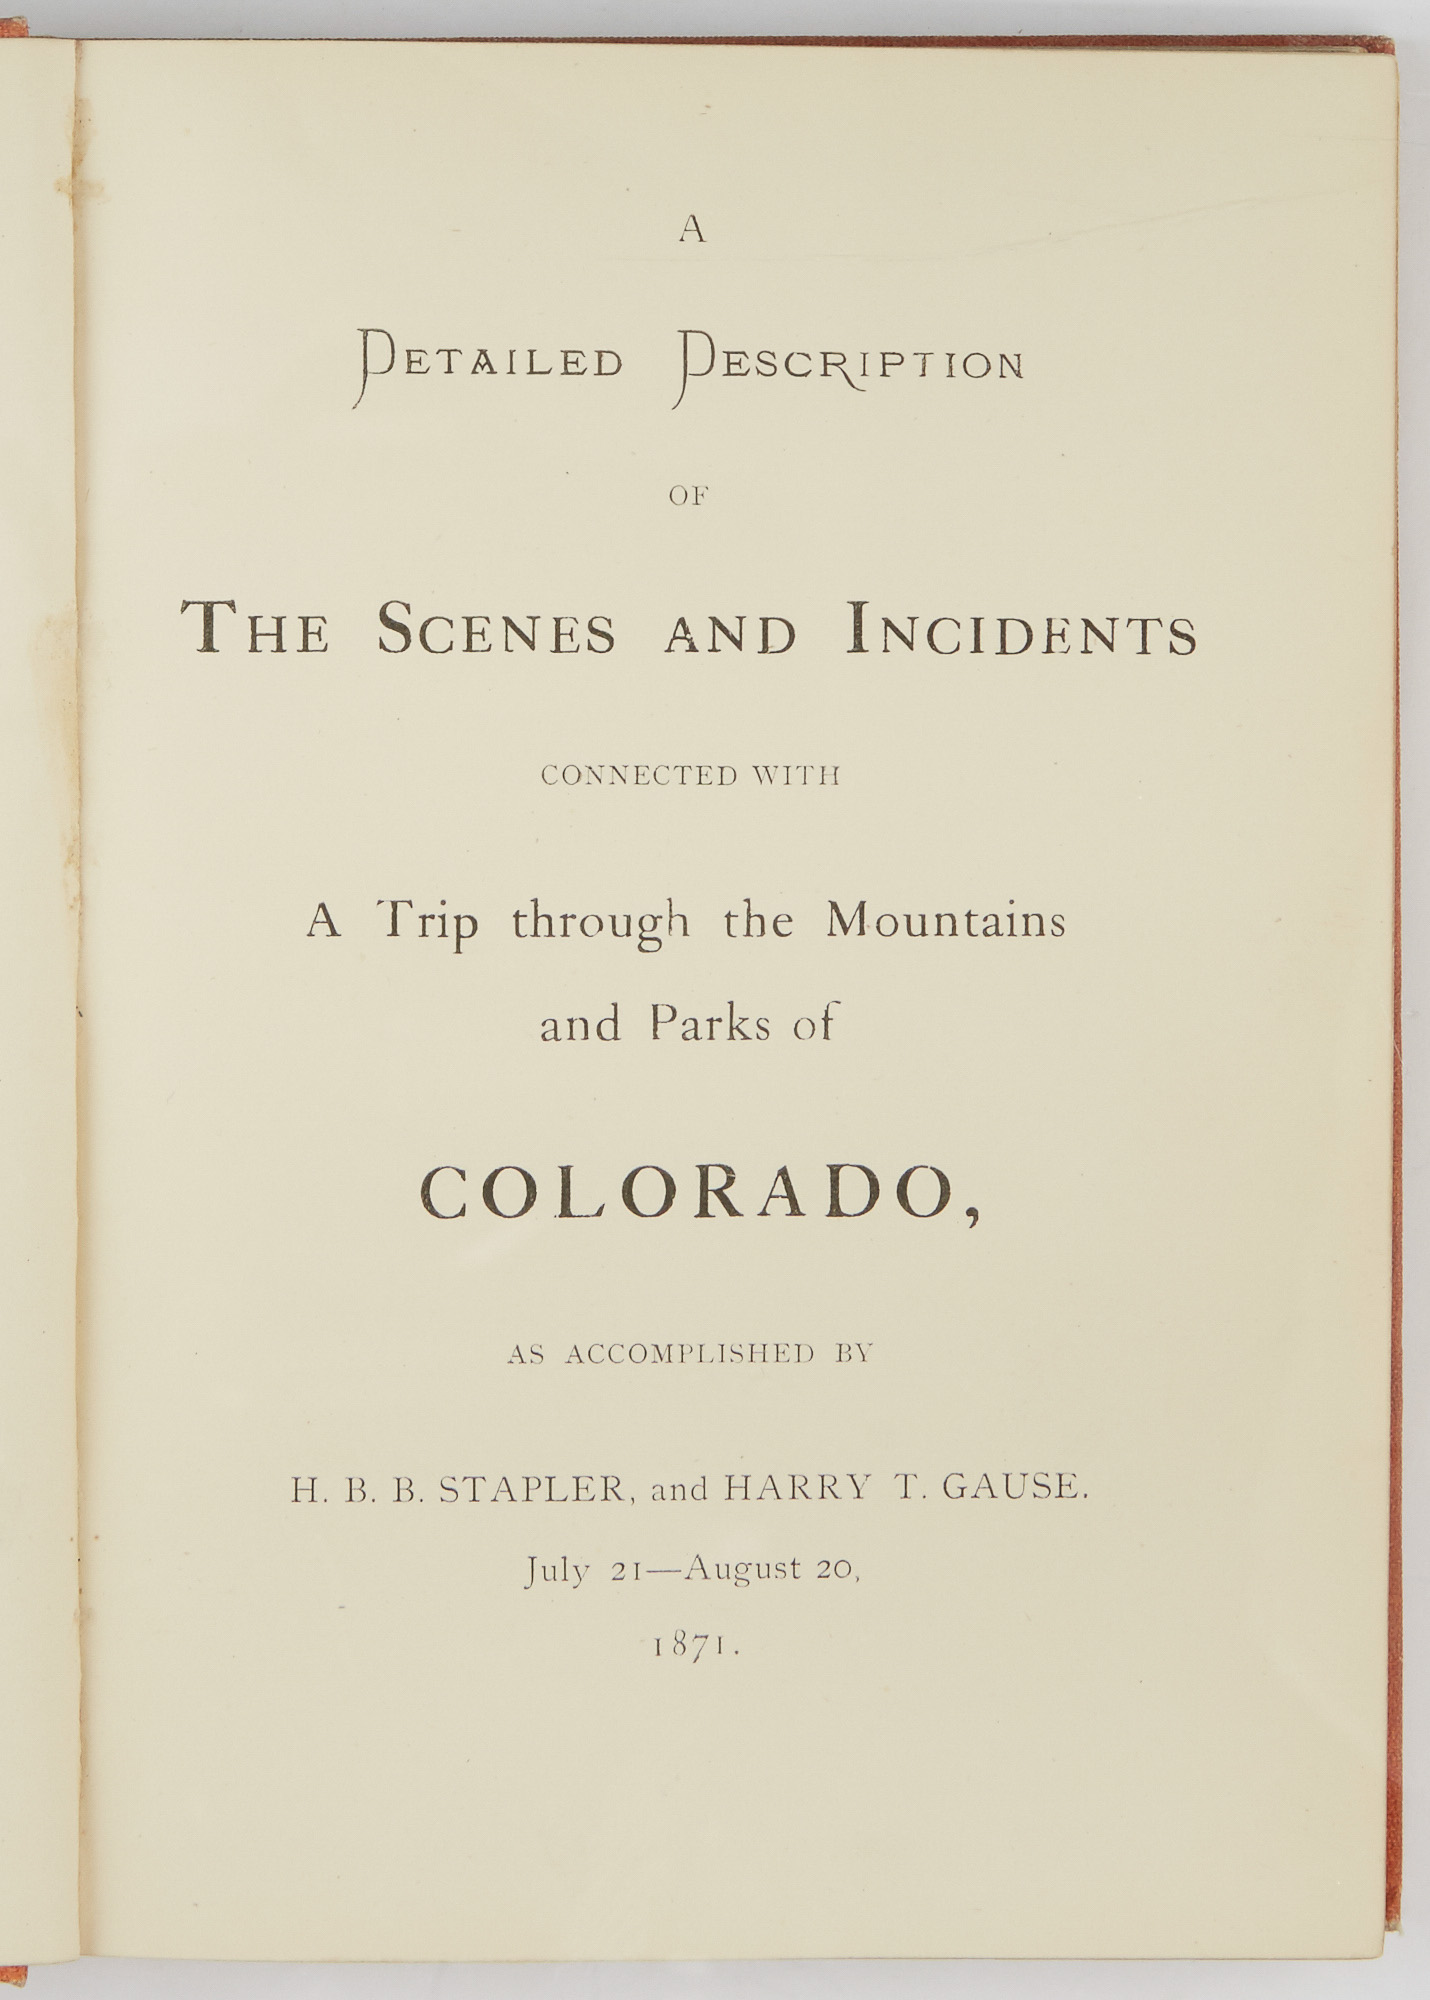 Lot image - [COLORADO]  GAUSE, HENRY T. & STAPLER, H. B. B. A Detailed Description of The Scenes and Incidents connected with A Trip through the Mountains and Parks of Colorado, as accomplished by H. B. B. Stapler, and Harry T. Gause. July 21-August 20, 1871.